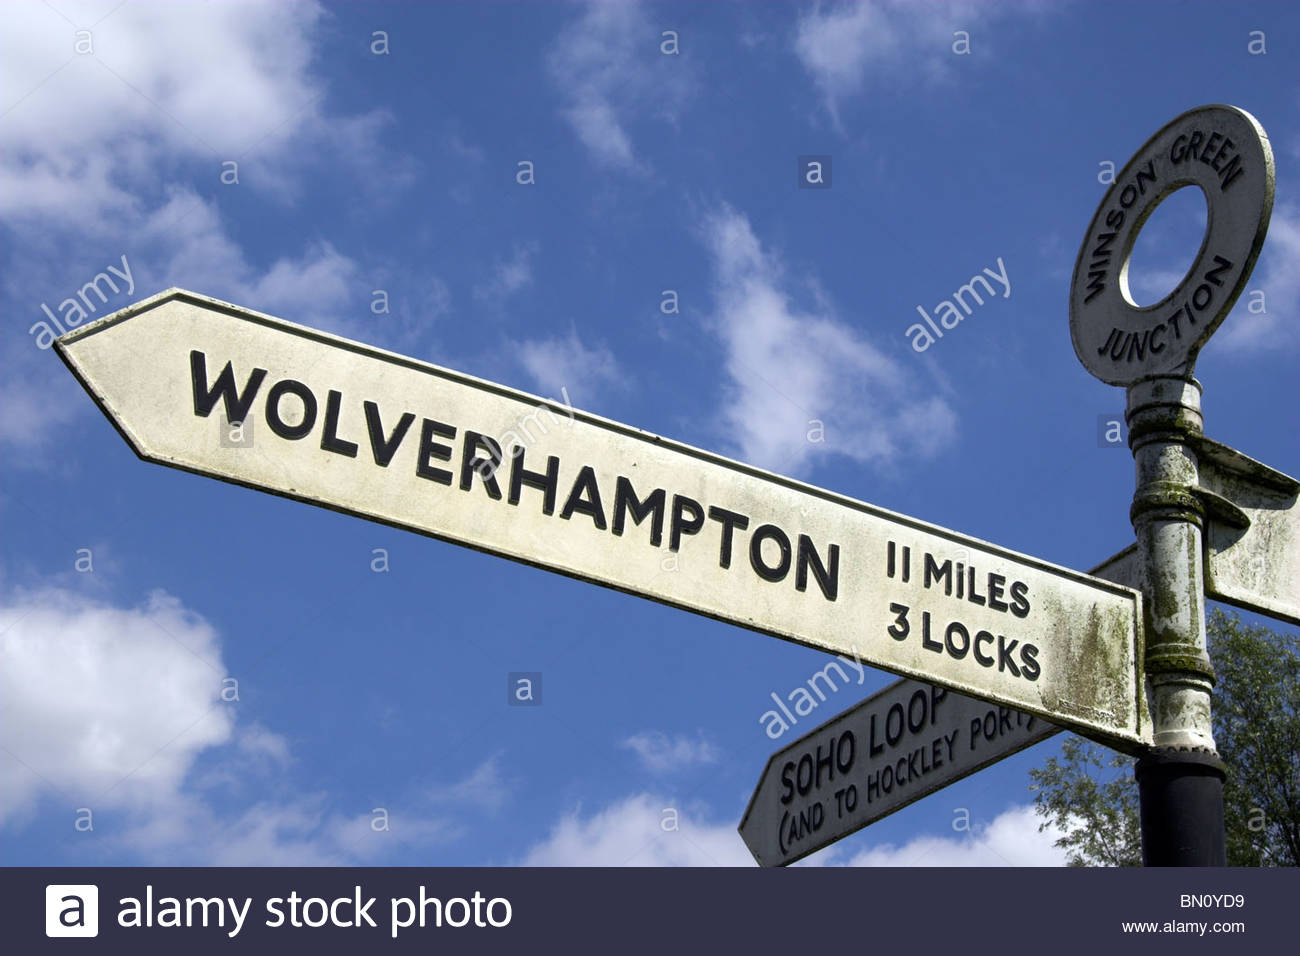 A signpost on the Birmingham to Wolverhampton Canal, West Midlands, UK. - Stock Image